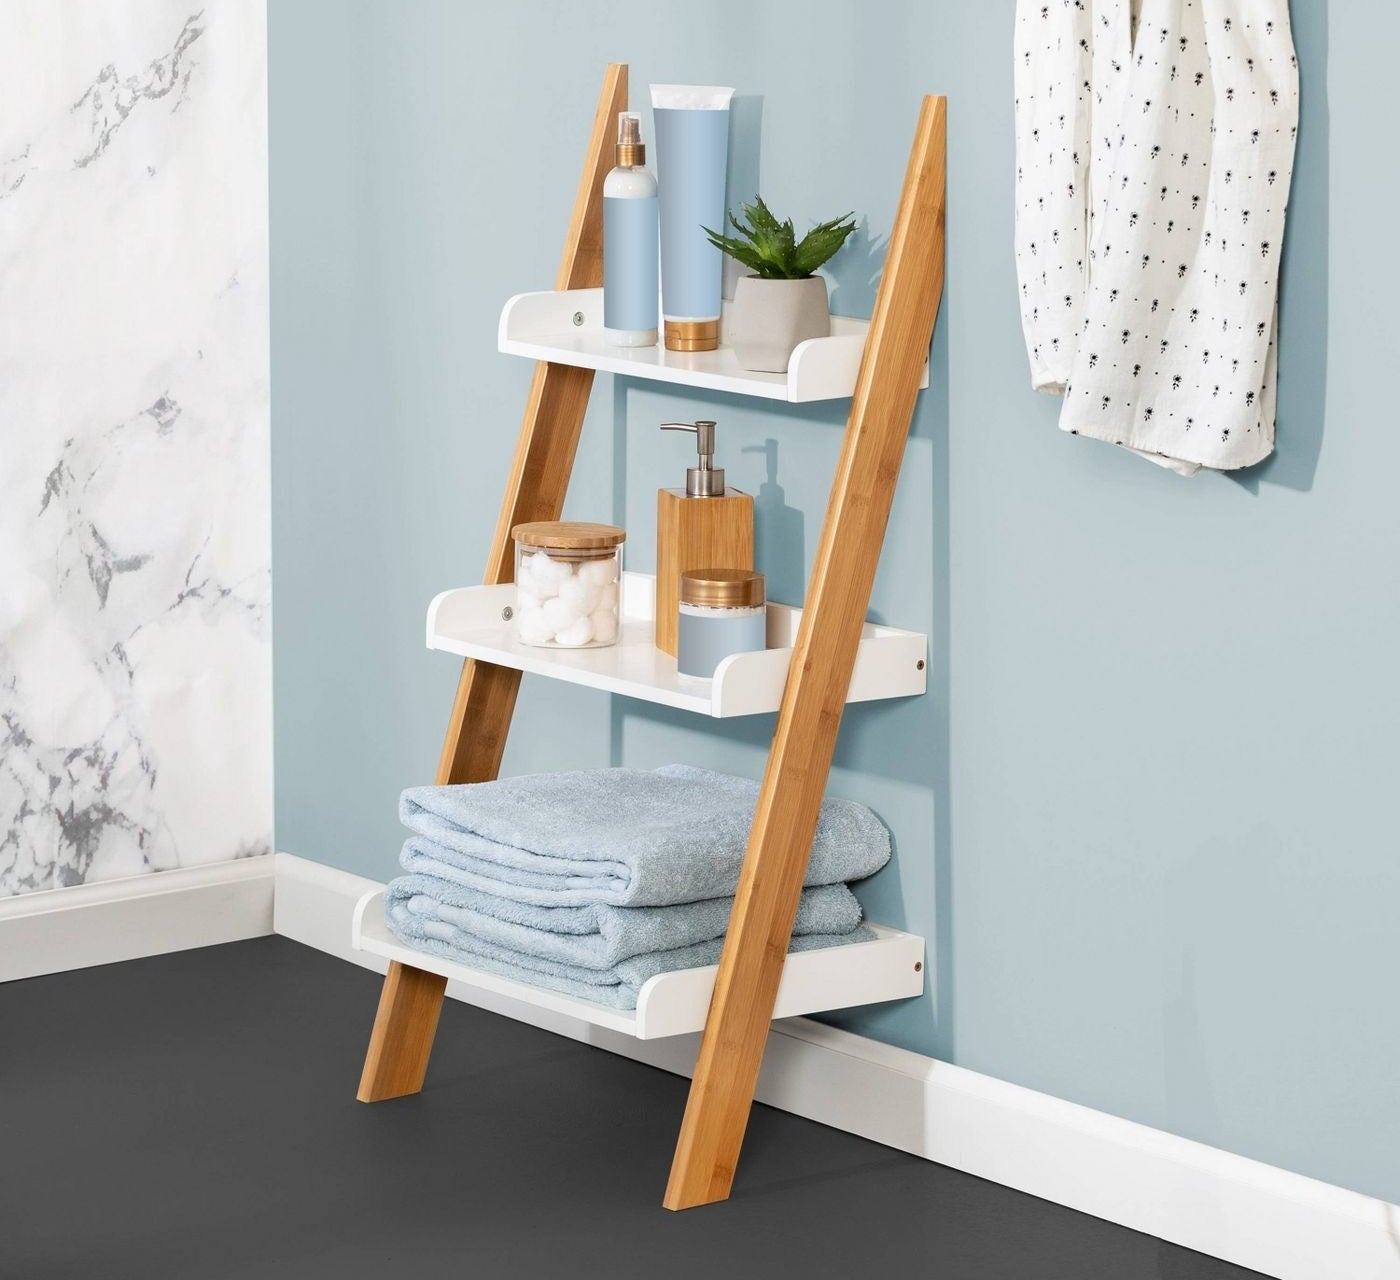 3-tiered leaning shelf with wood and white accents